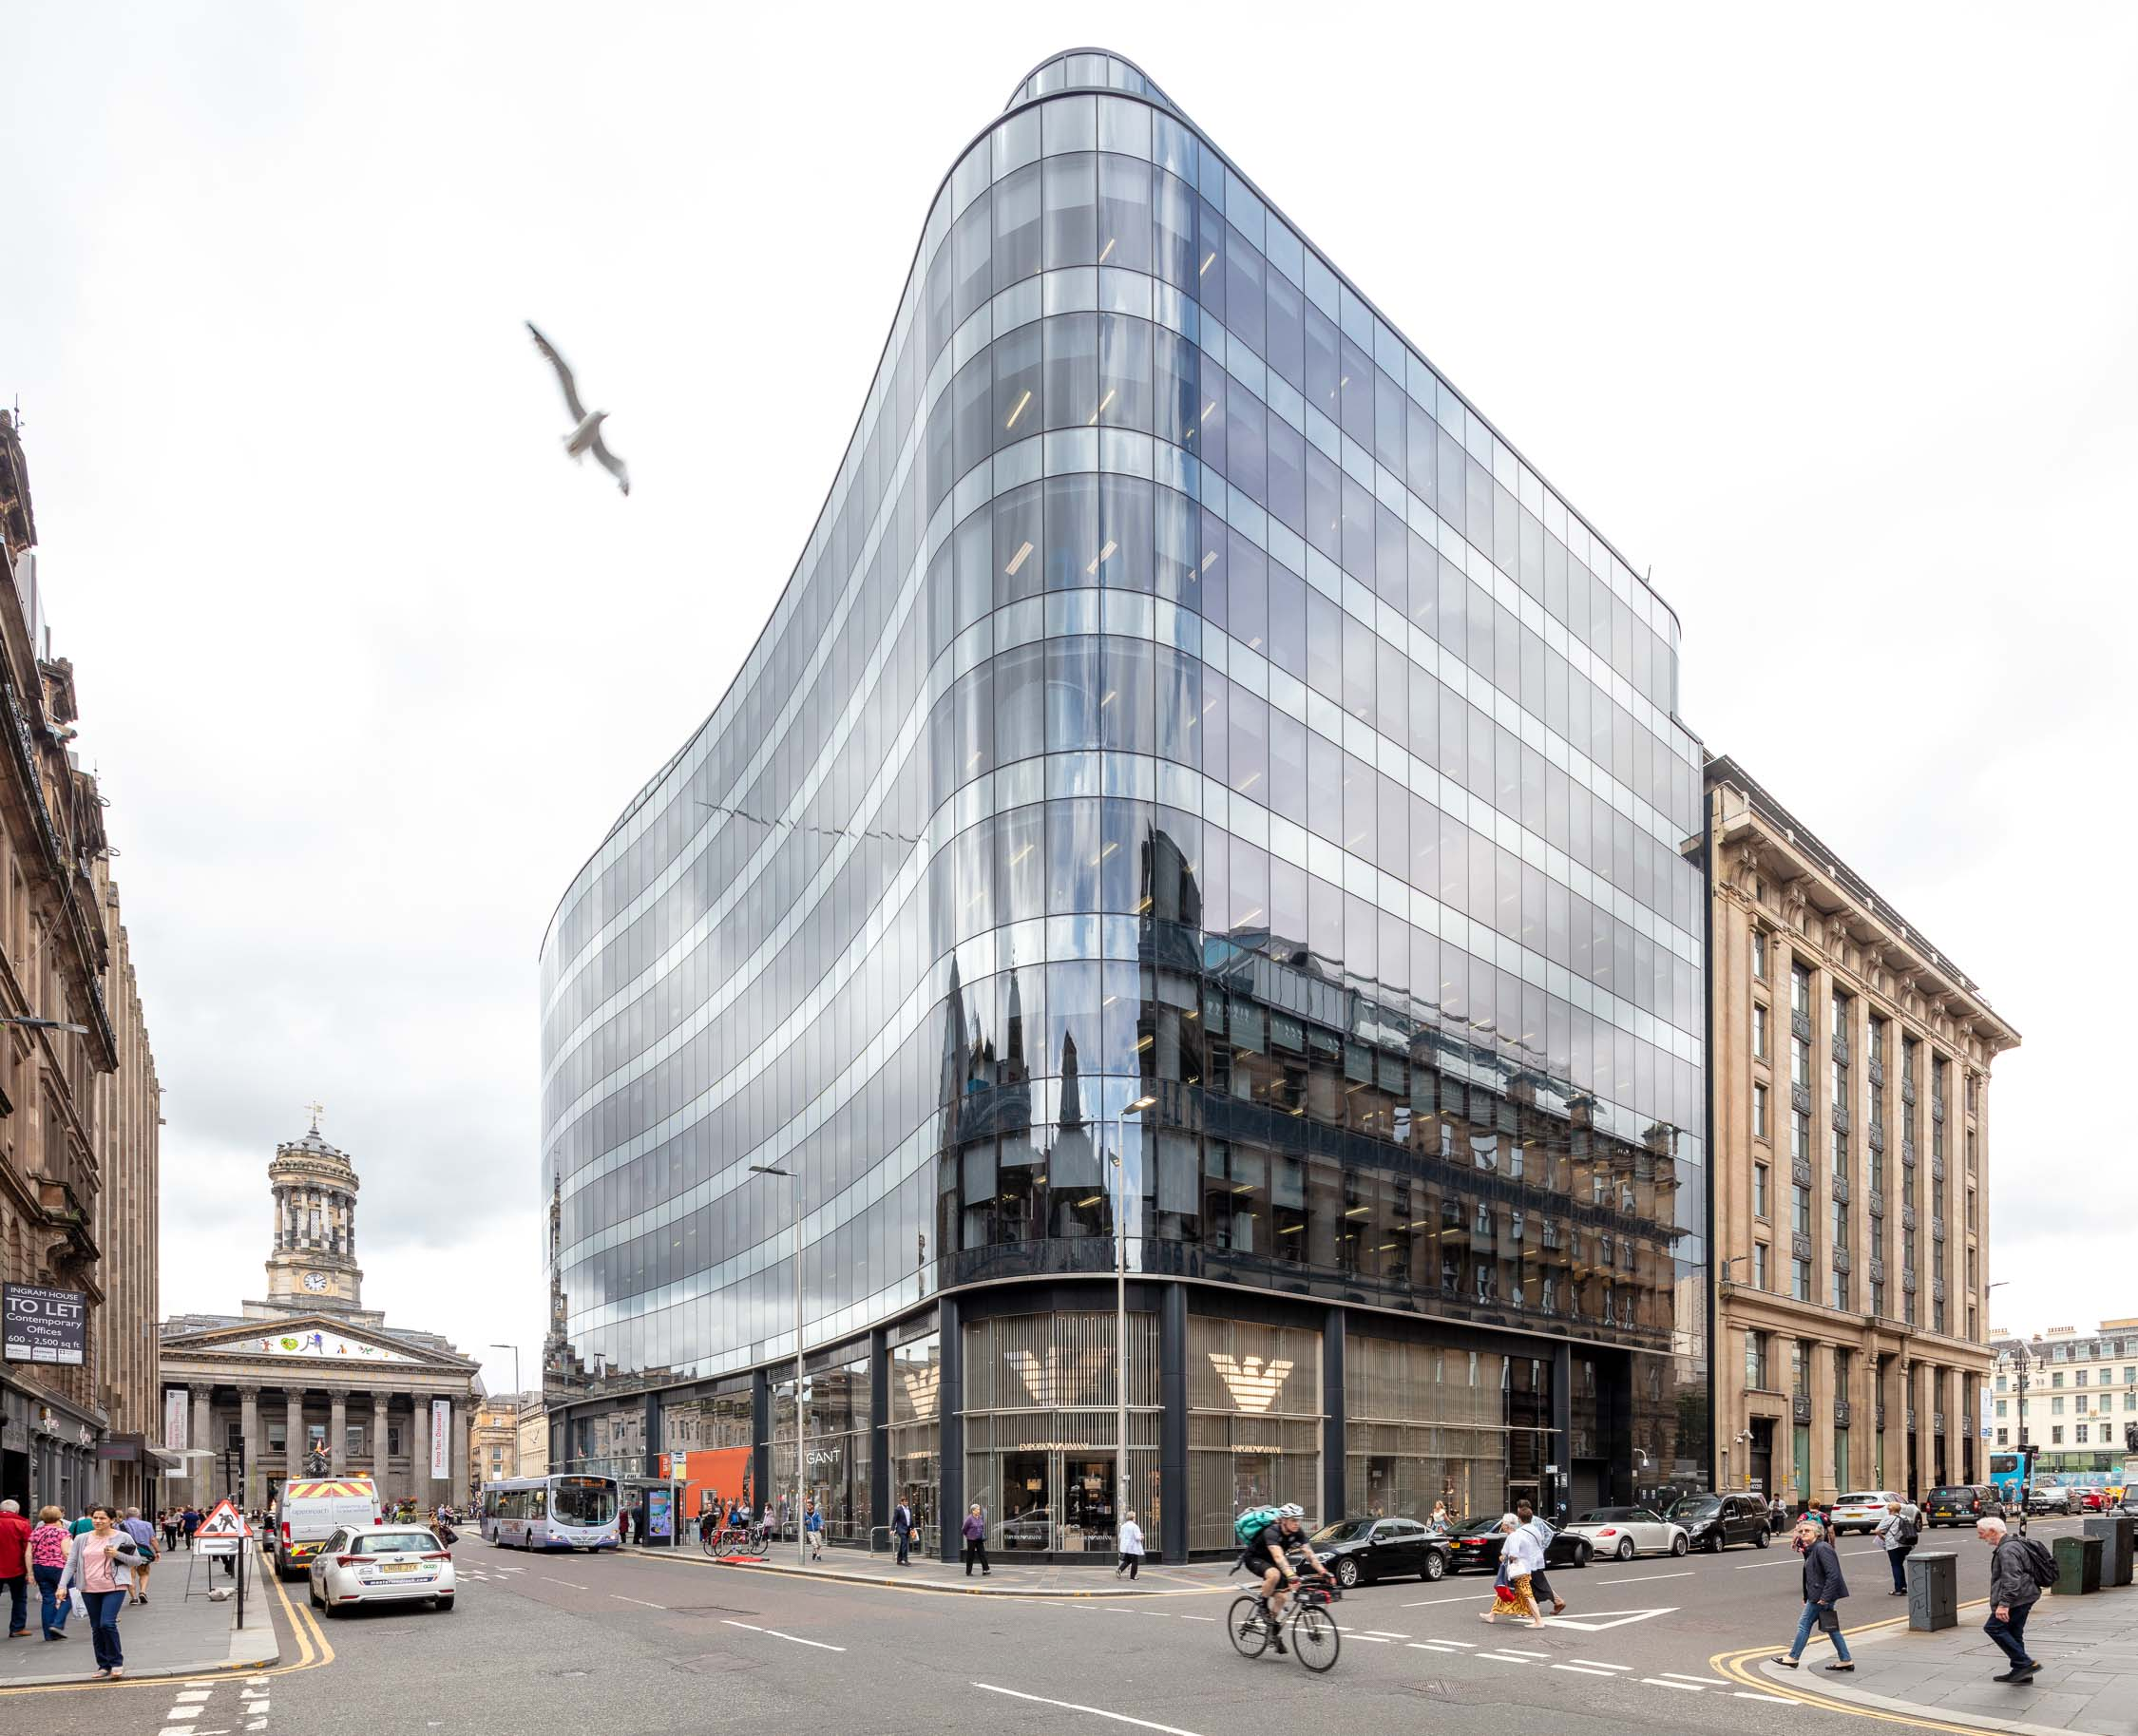 Grade A office space in Glasgow, IngramStreet / HannoverStreet / QueenStreet. 110 Queen Street is a mixed-use development offering retail and office space totalling an impressive 224,000ft² encased within a concave façade of curtain wall glazing. It offers one of the best addresses in Glasgow's central business district. It won the Scottish Property Awards in the  Architectural Excellence  Awards category (Commercial Buildings 2016).